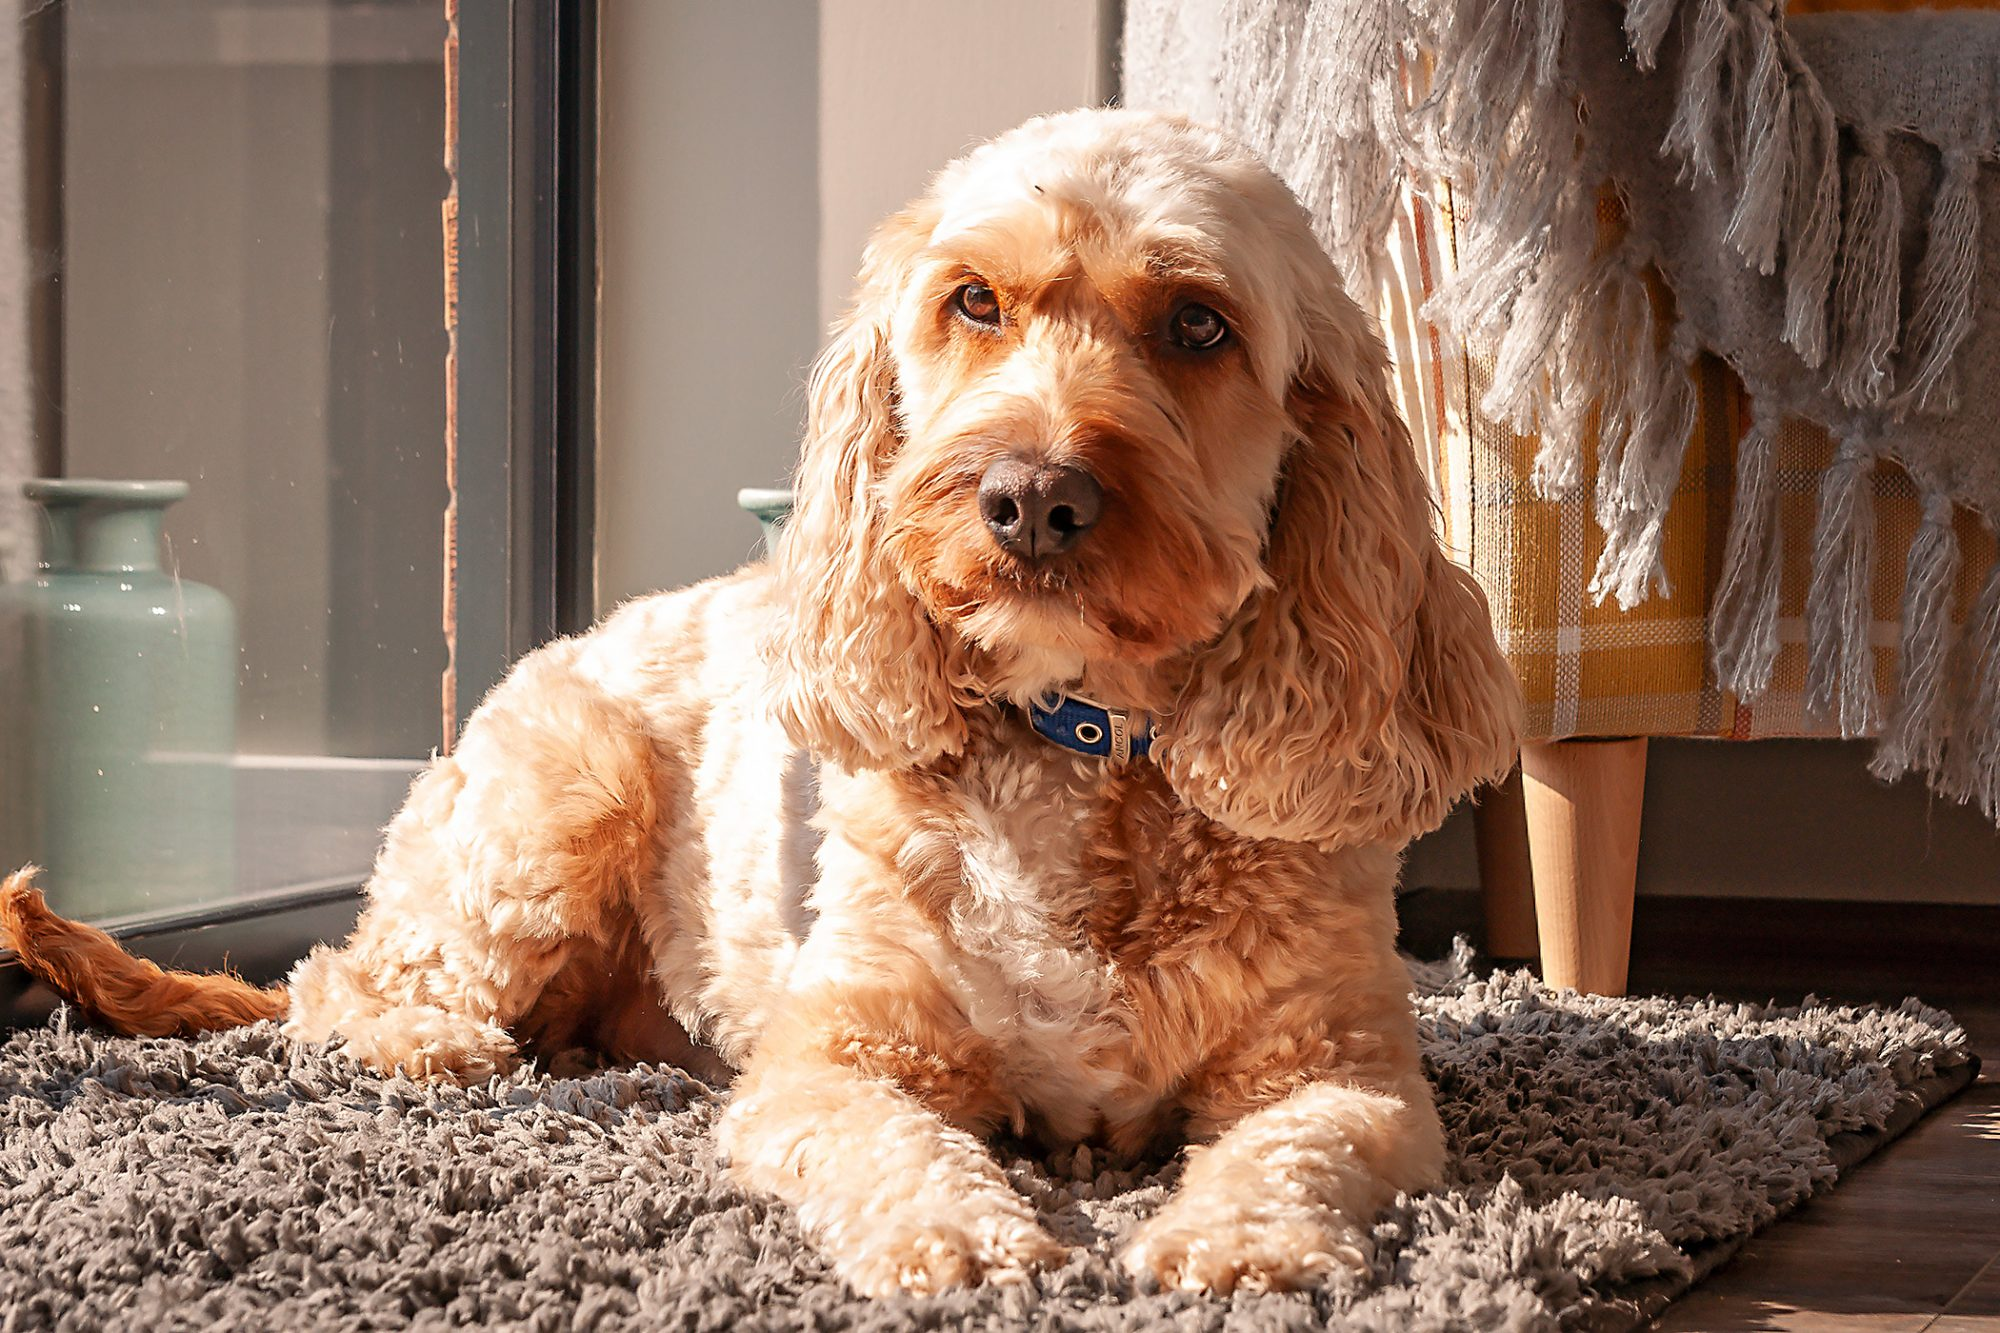 Cockapoo lying on rug in front of window